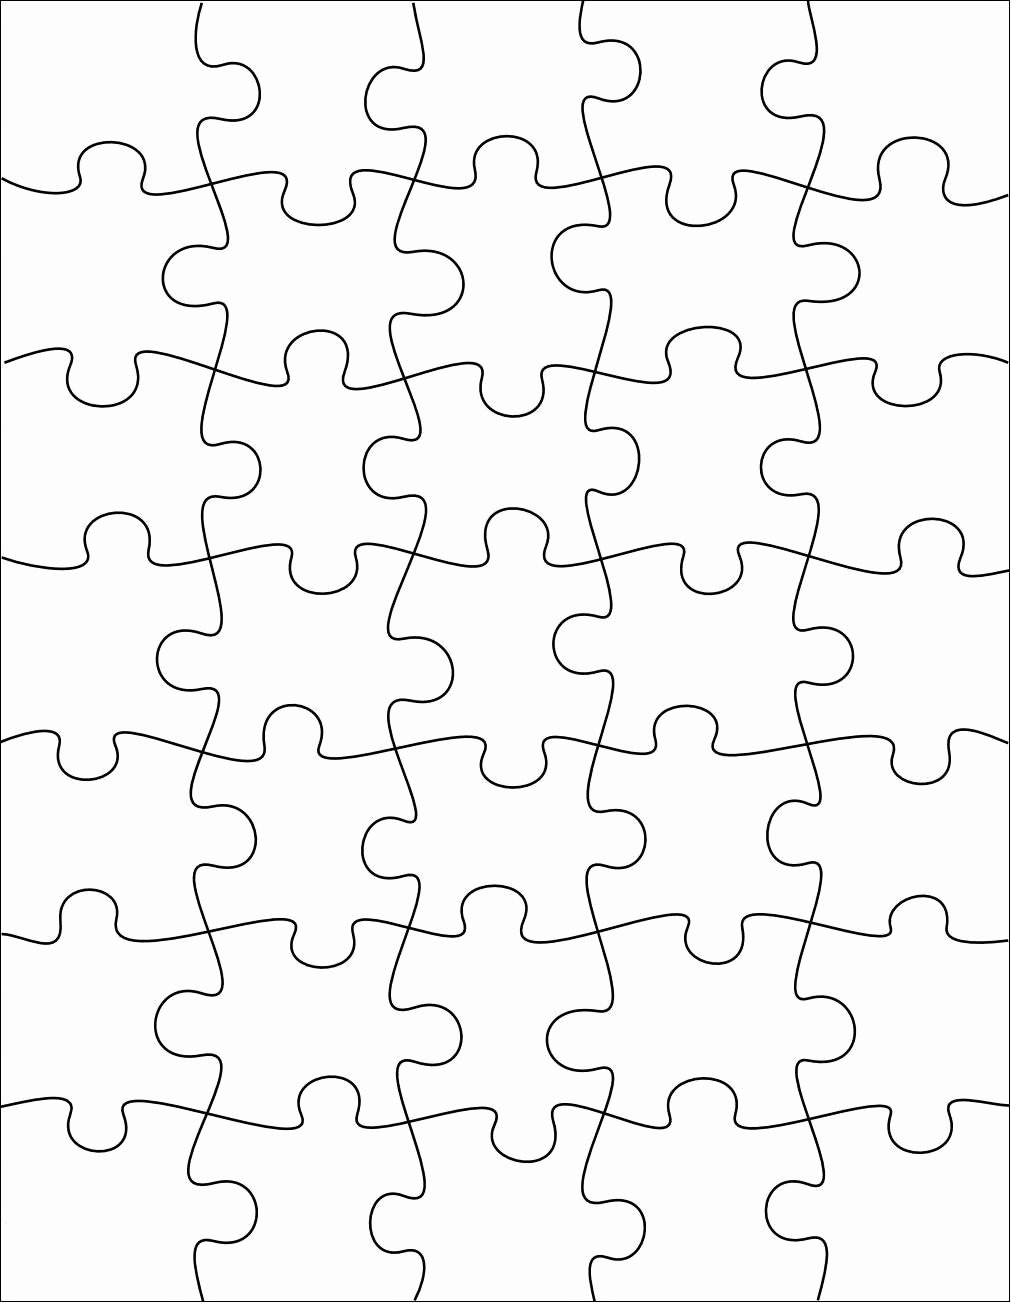 Jigsaw Puzzle Template Generator Awesome Robbygurl S Creations Diy Print Color & Cut Jigsaw Puzzles